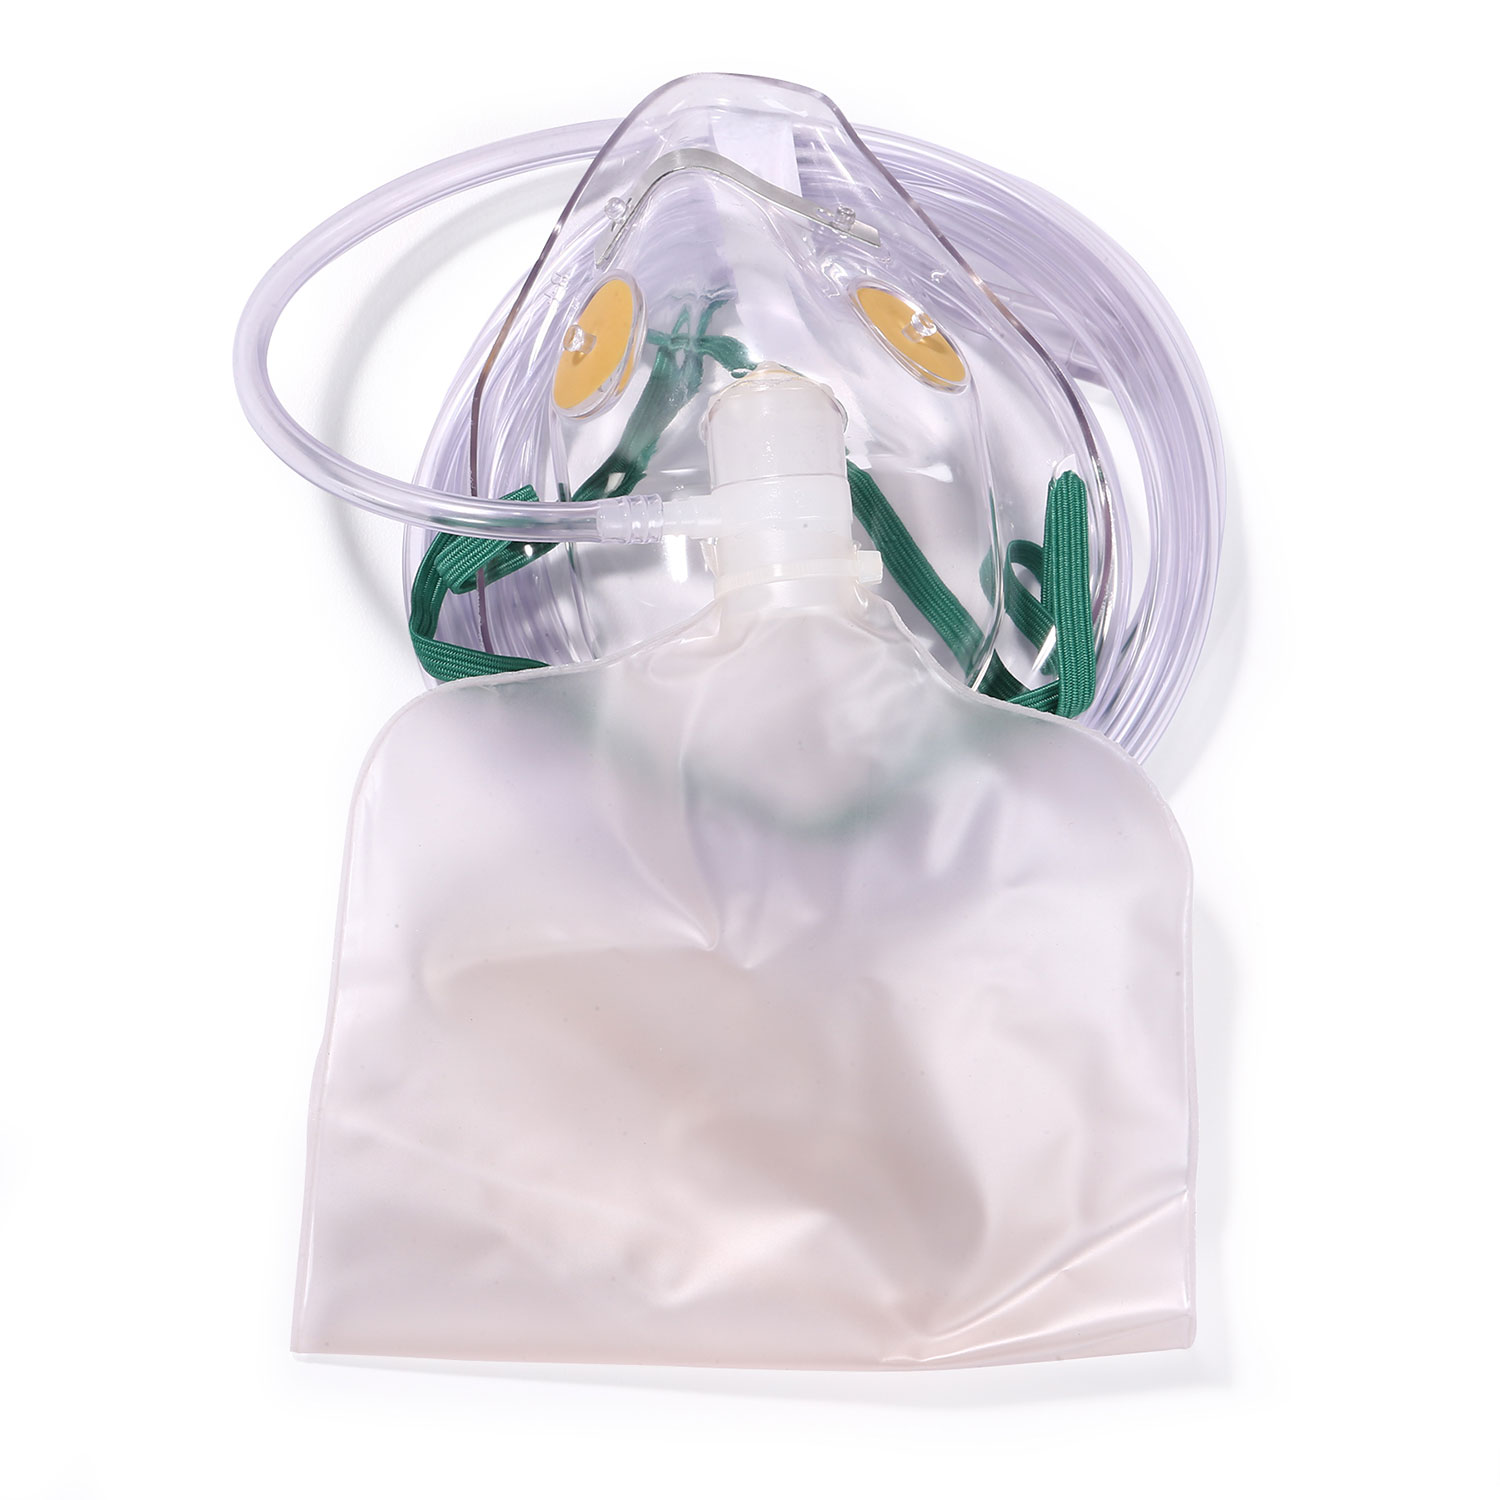 Allied Healthcare Products Adult Two Vent Non Rebreather Mas